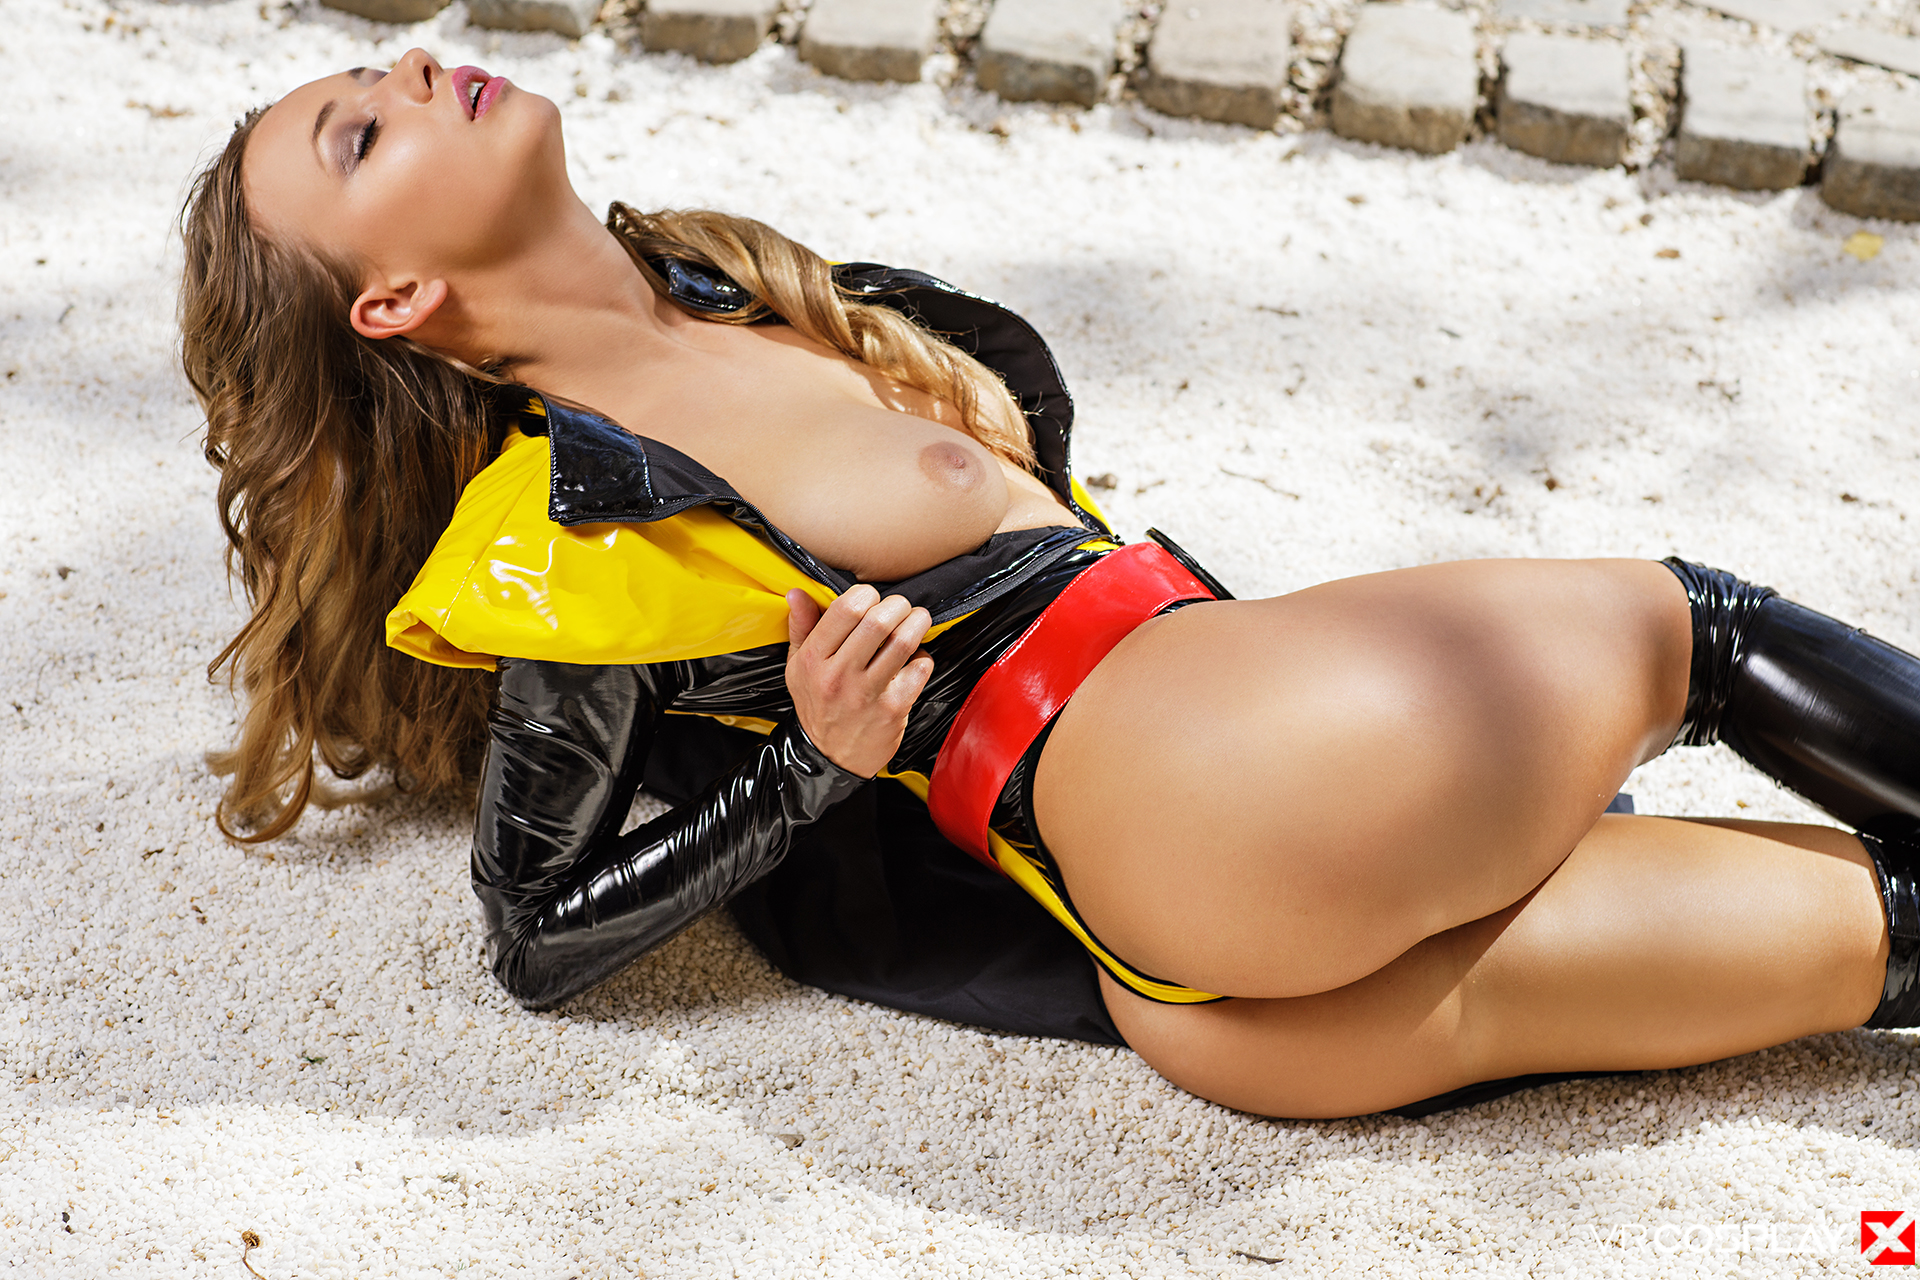 15-vrcosplay_kitty_pryde_a_xxx_parody